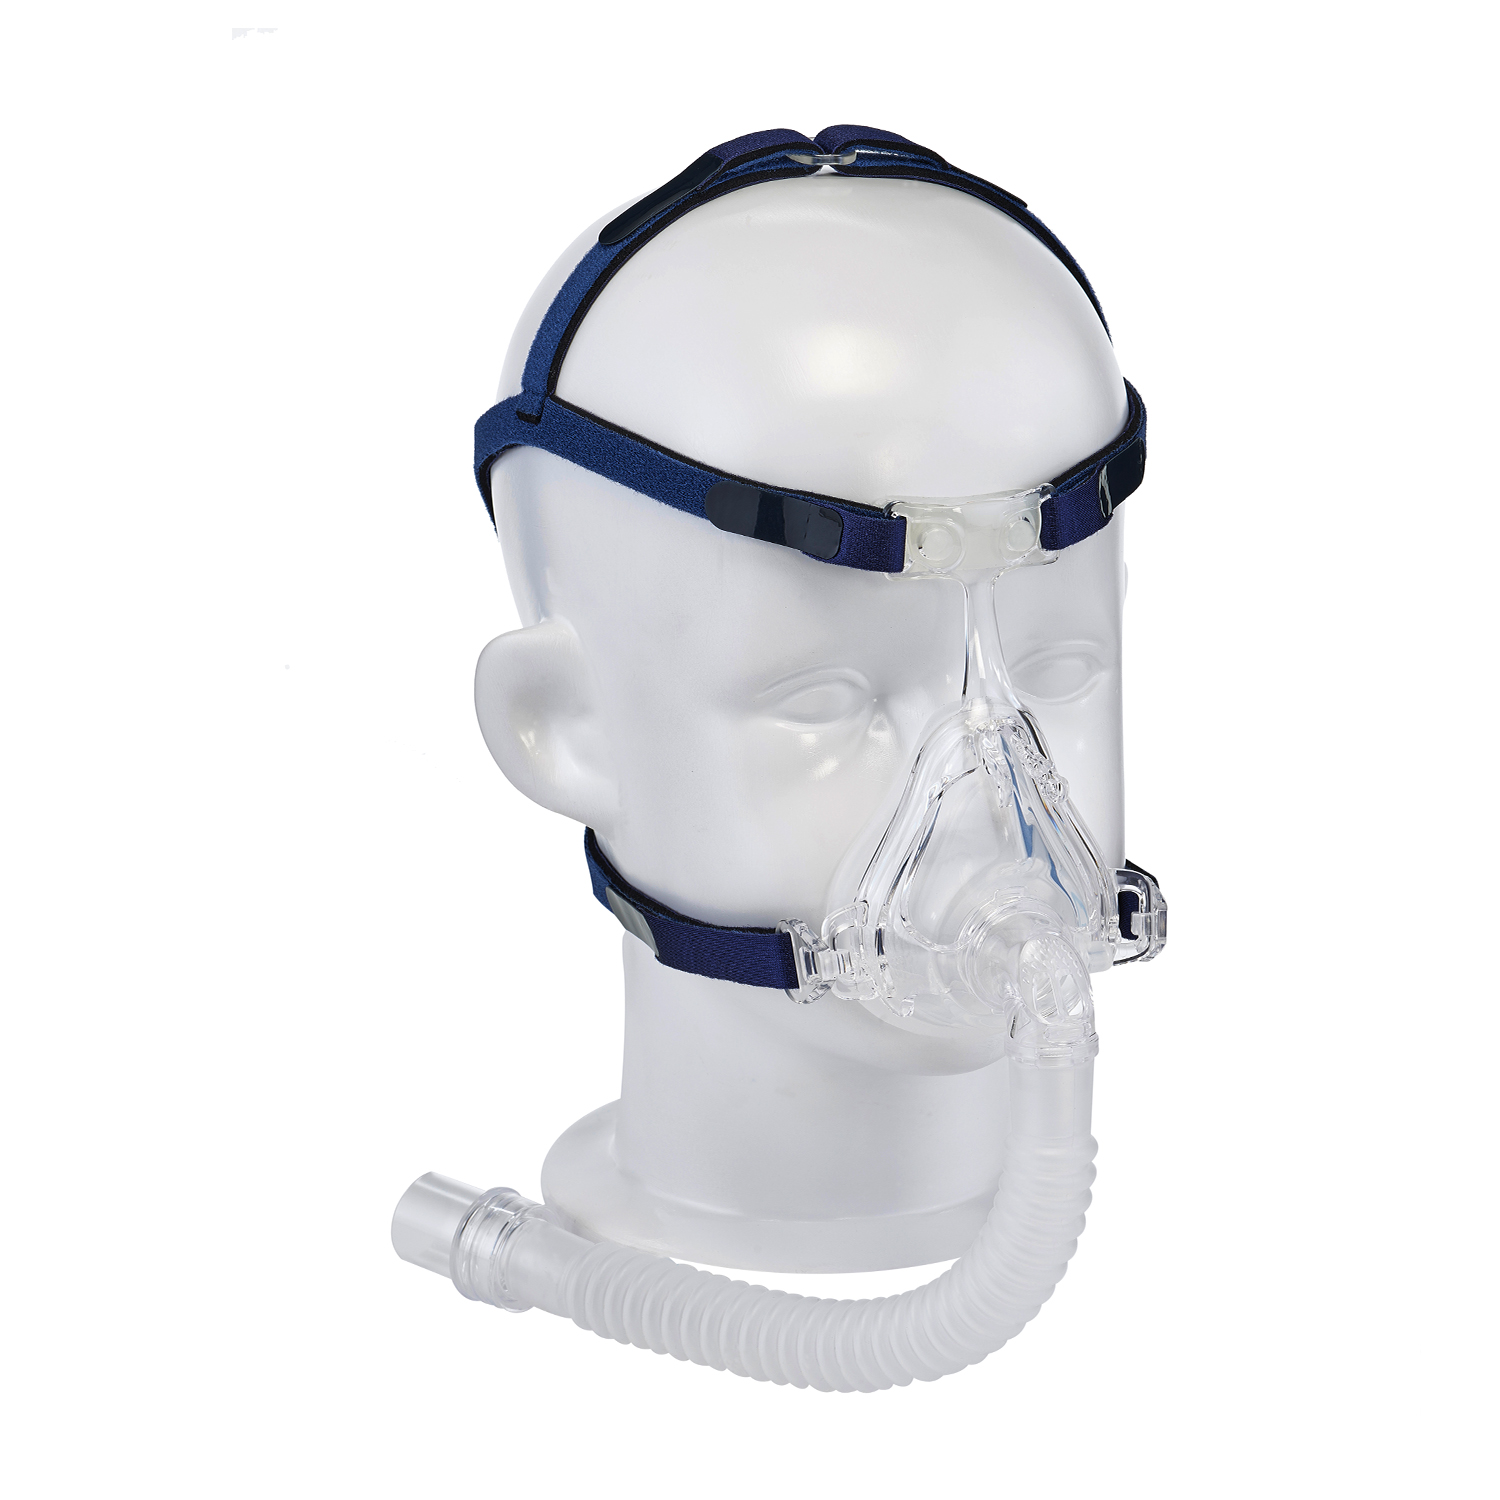 AG-PEDFF-S Nonny™ Full Face Pediatric CPAP Mask product photo